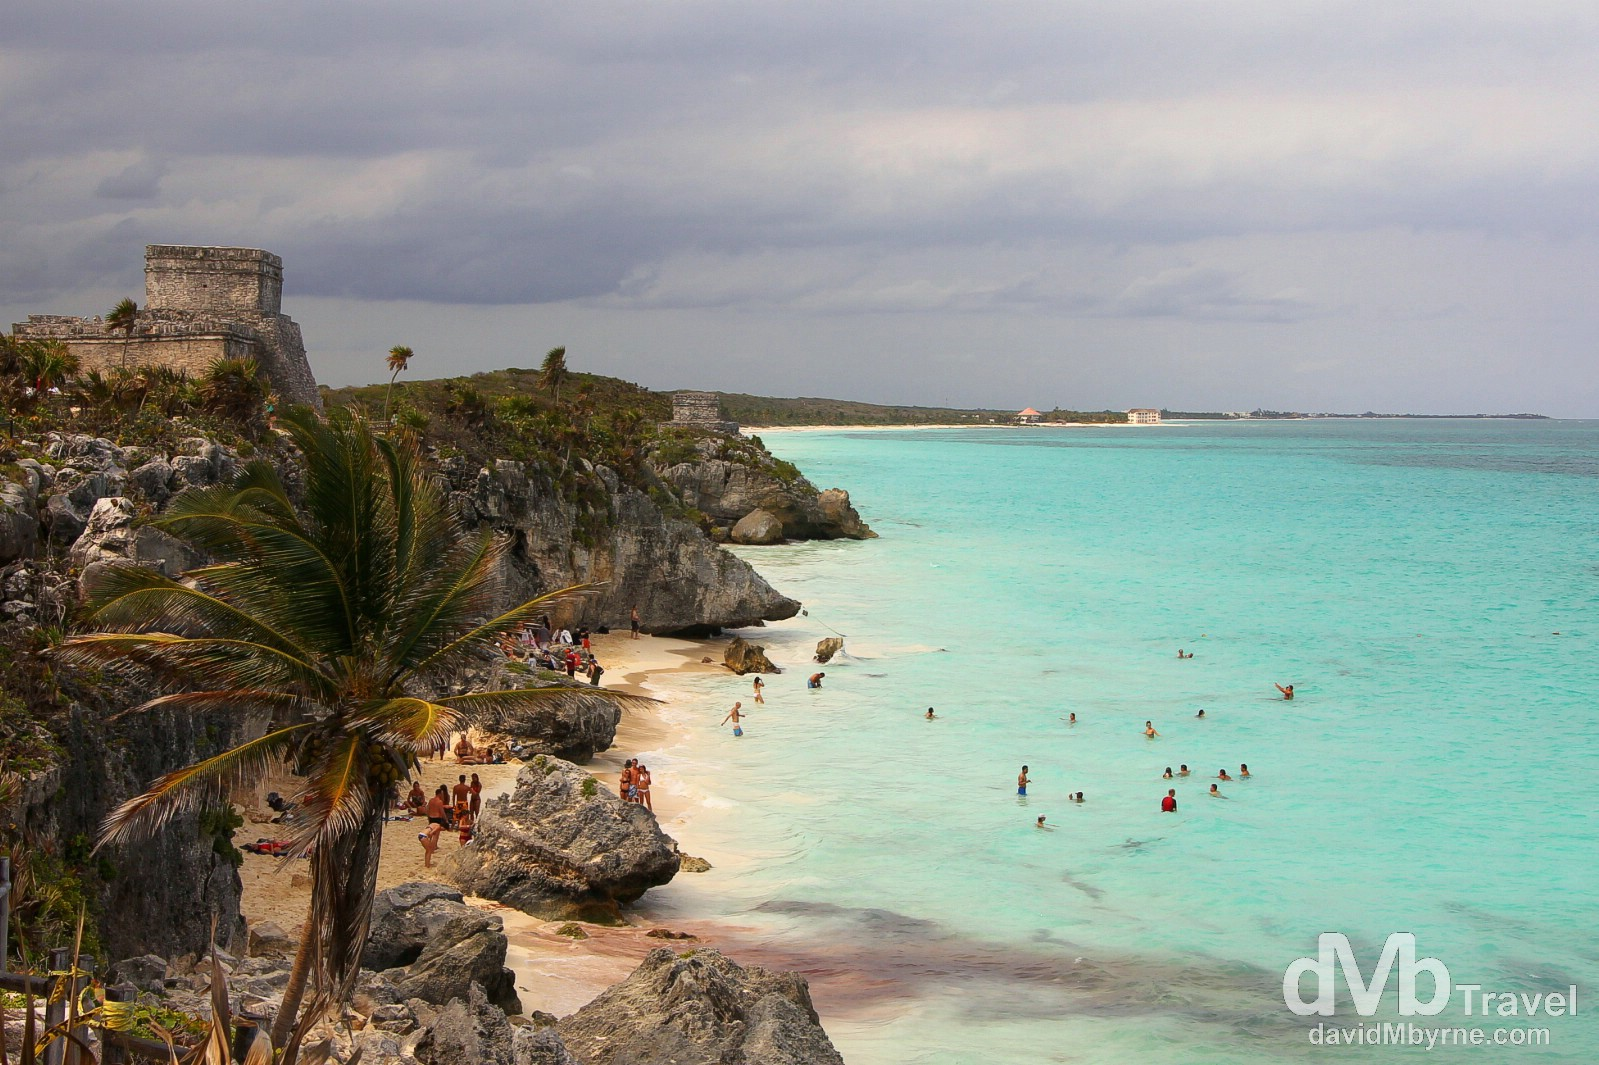 The Mayan ruins of Tulum overlooking the Caribbean Coast, Yucatan Peninsula, Mexico. May 6th 2013.